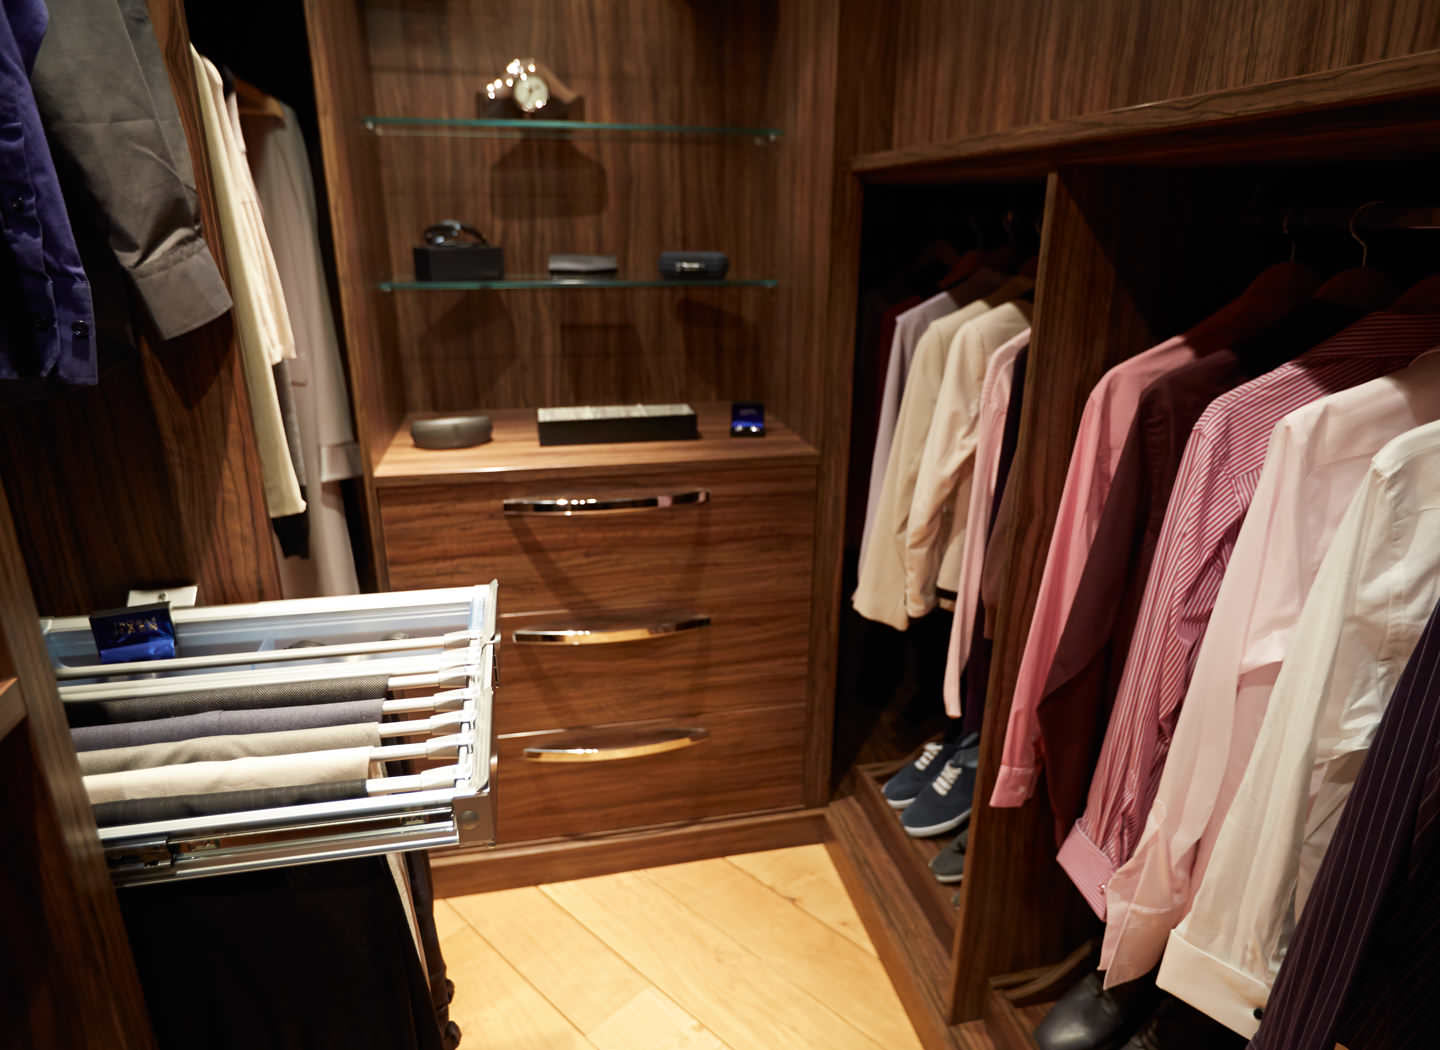 Case study showing full depth storage in walk in wardrobe